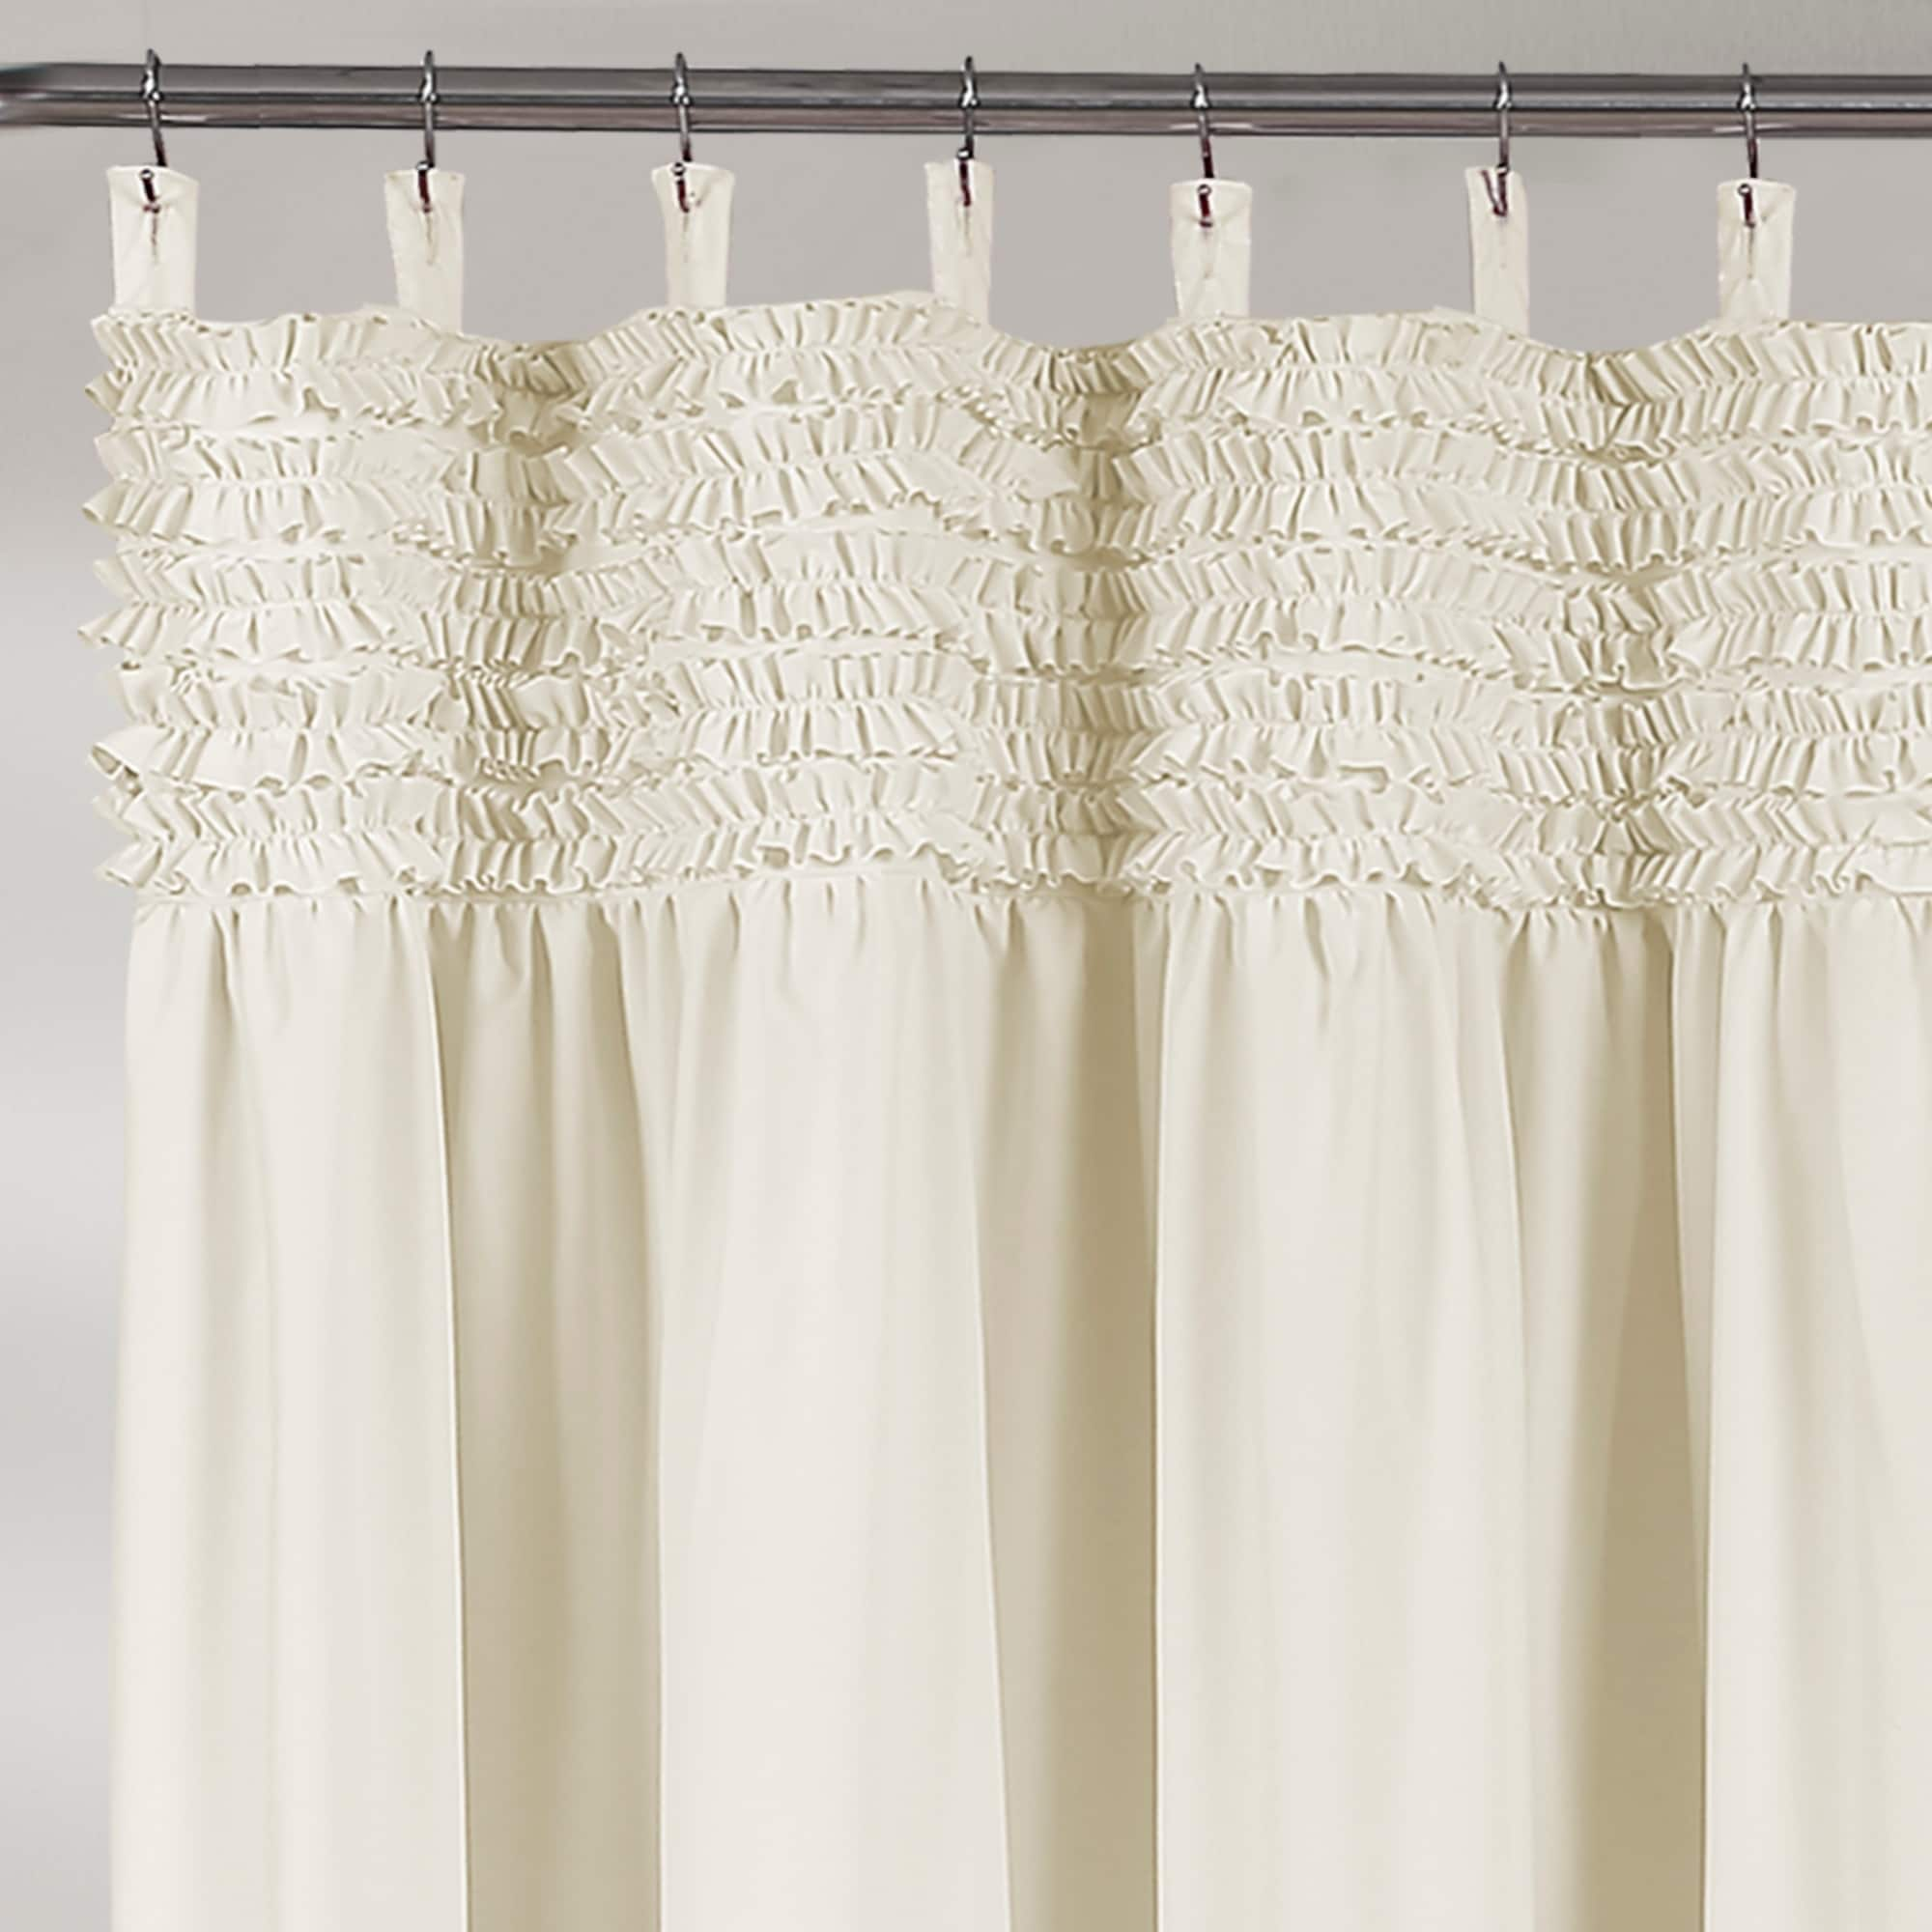 Lush Decor Lydia Ruffle Shower Curtain On Free Shipping Orders Over 45 21014550